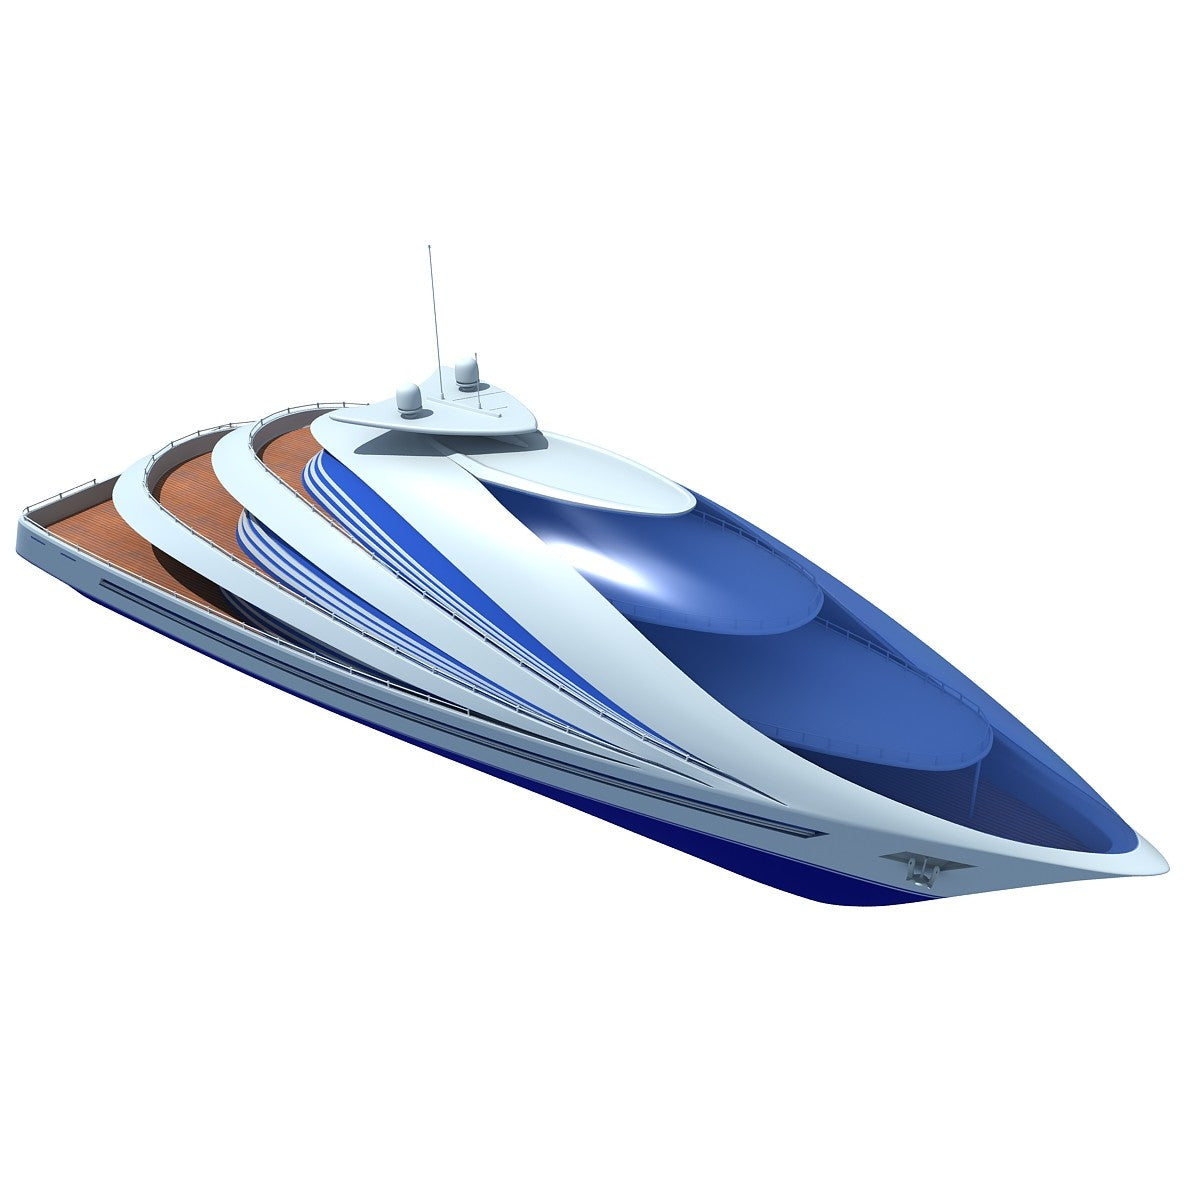 Luxury Yacht 3D Models